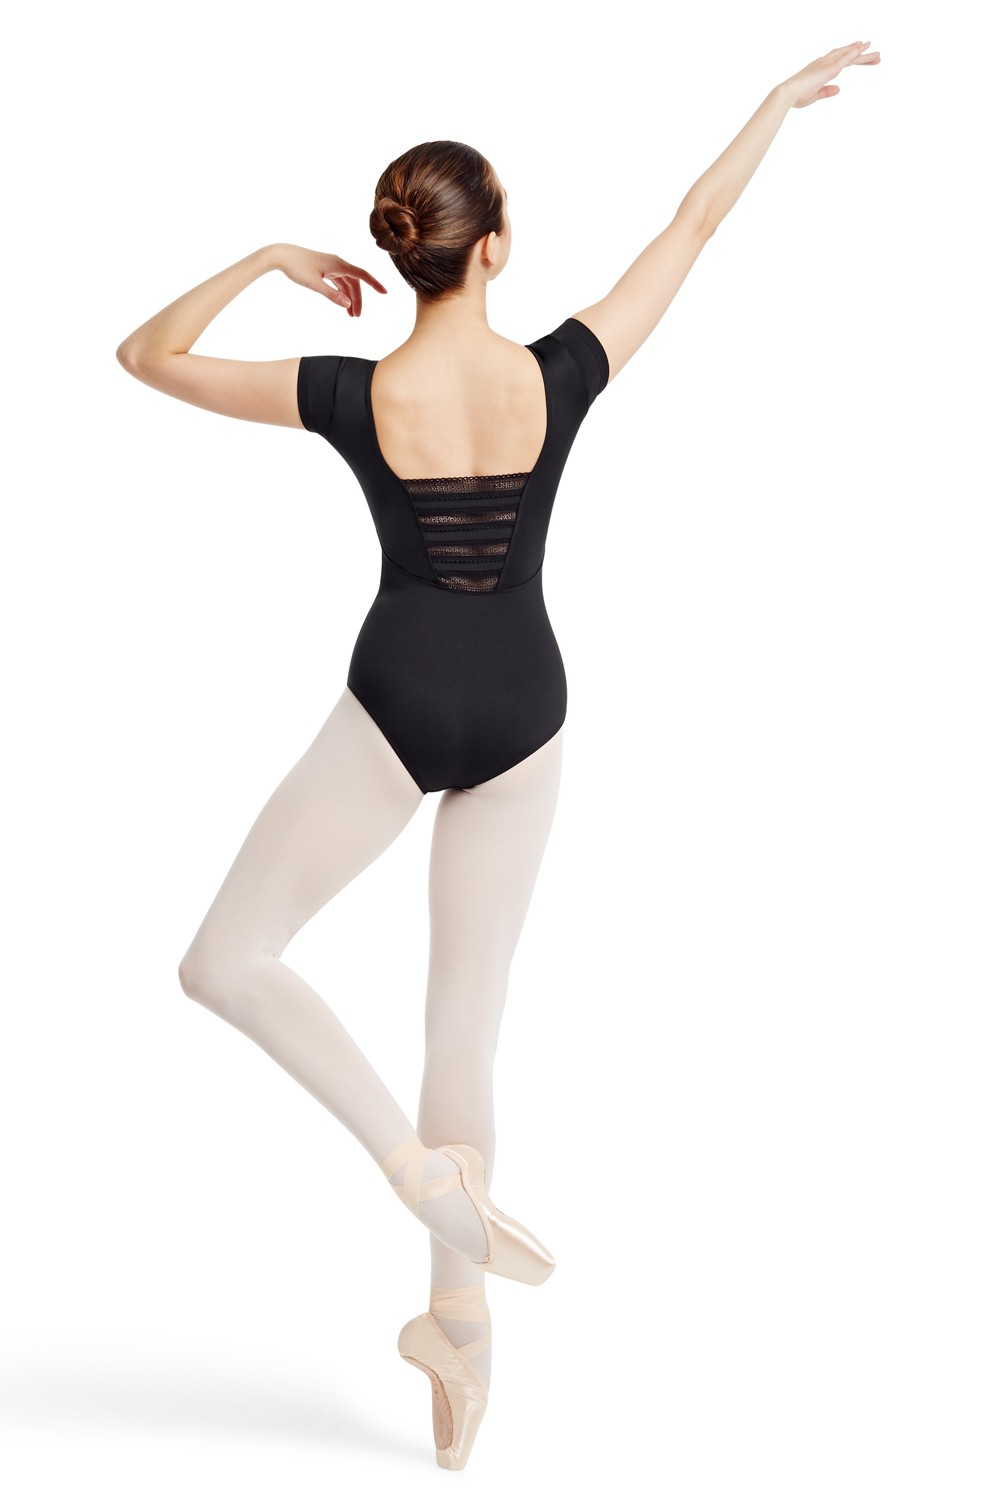 Stretch Cap Sleeve Leo Women's Dance Leotards